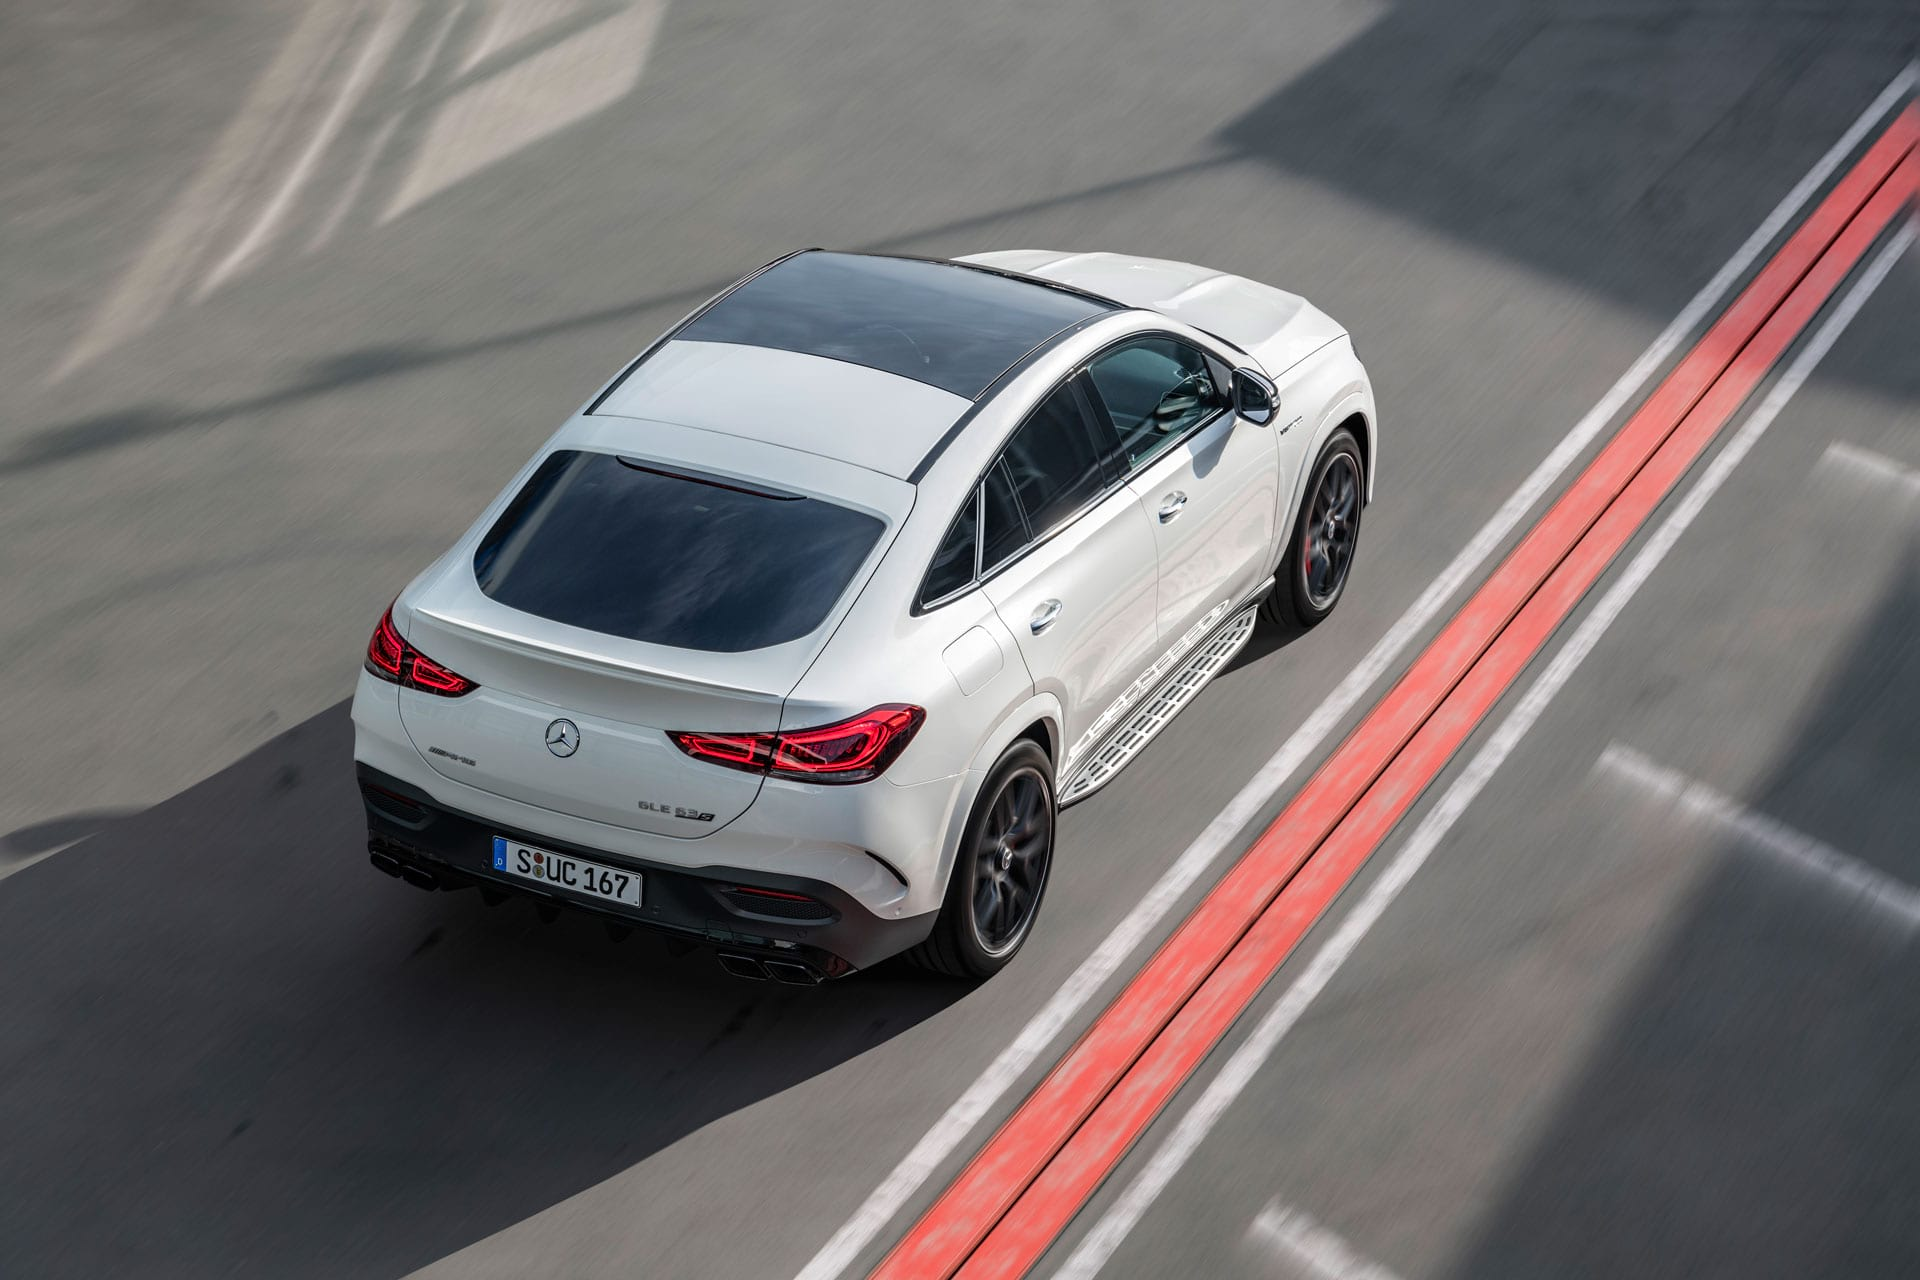 Mercedes–AMG GLE 63 4MATIC Coupe